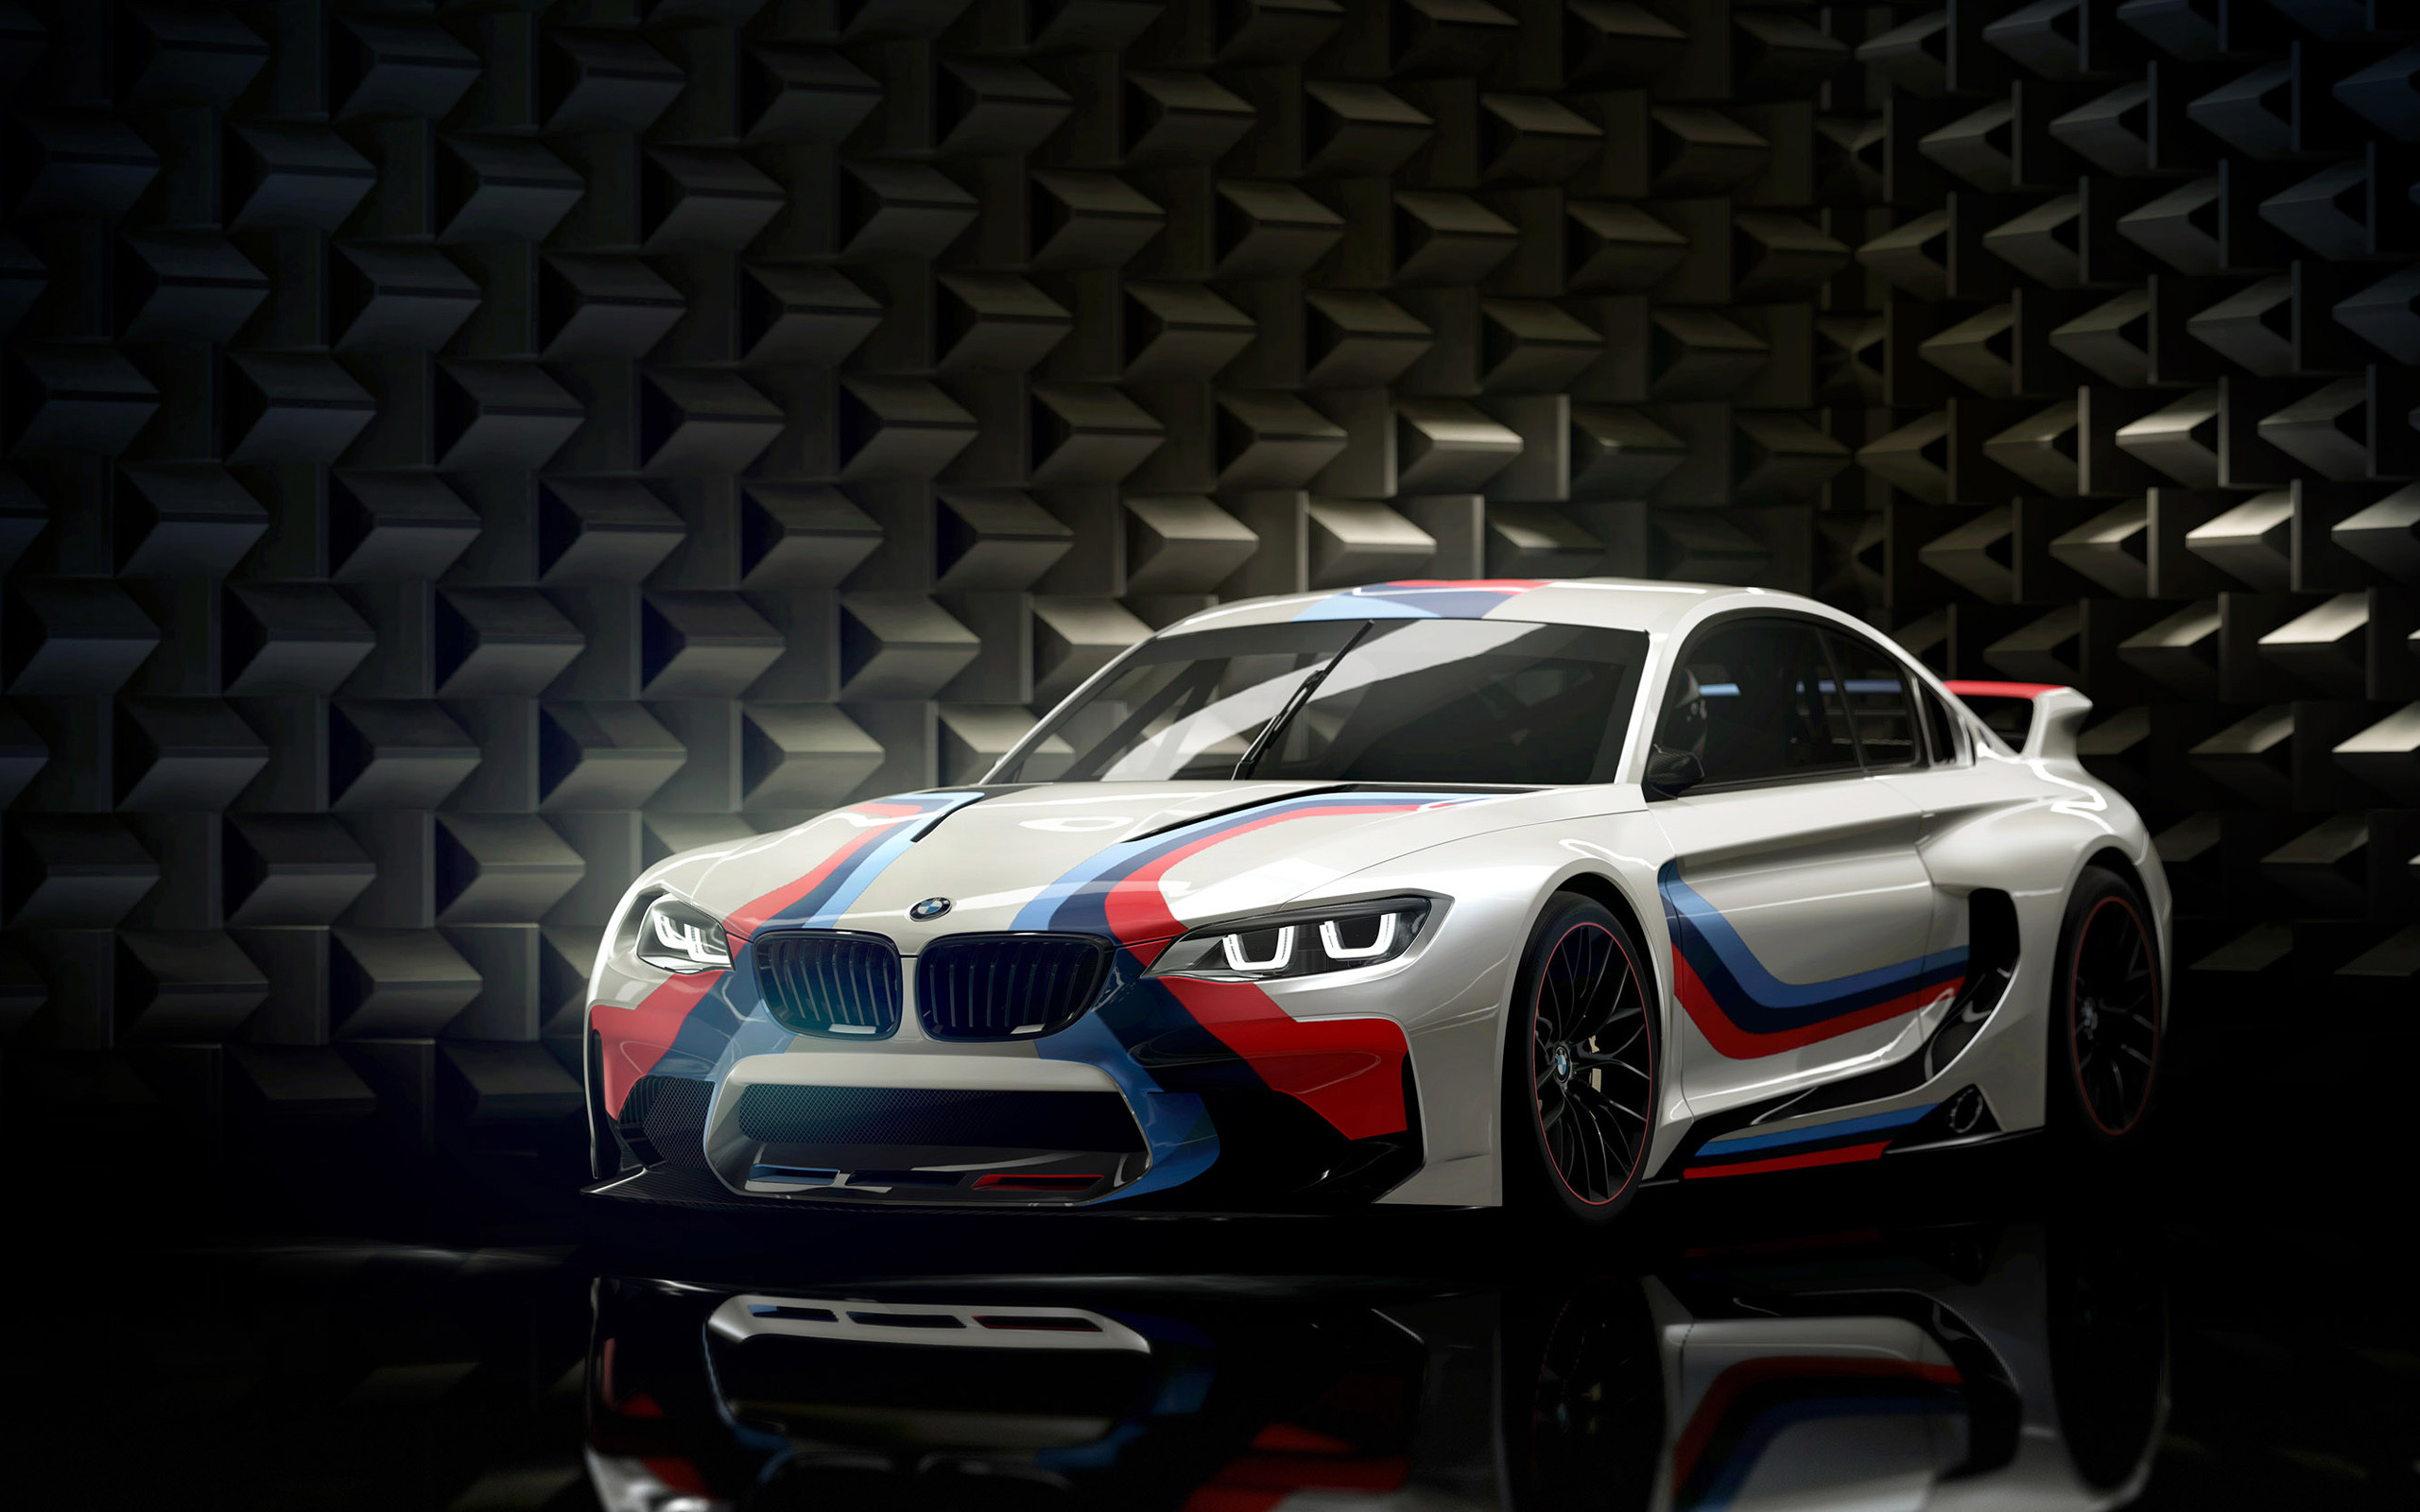 Great Wallpaper High Resolution Bmw - 632321-bmw-pics-wallpaper-2560x1600-high-resolution  Perfect Image Reference_36681.jpg